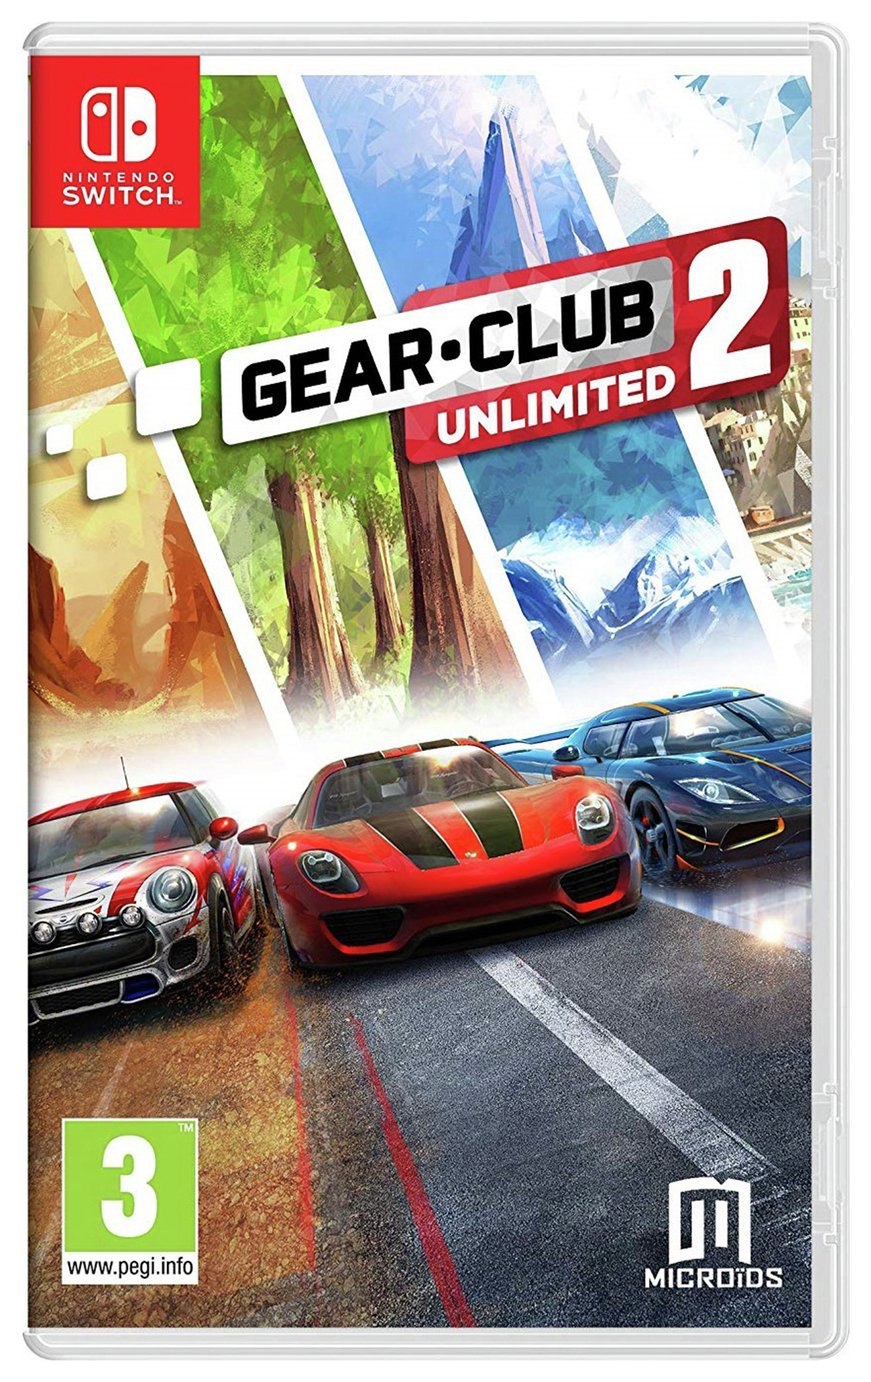 Gear Club 2 Unlimited Nintendo Switch Game review